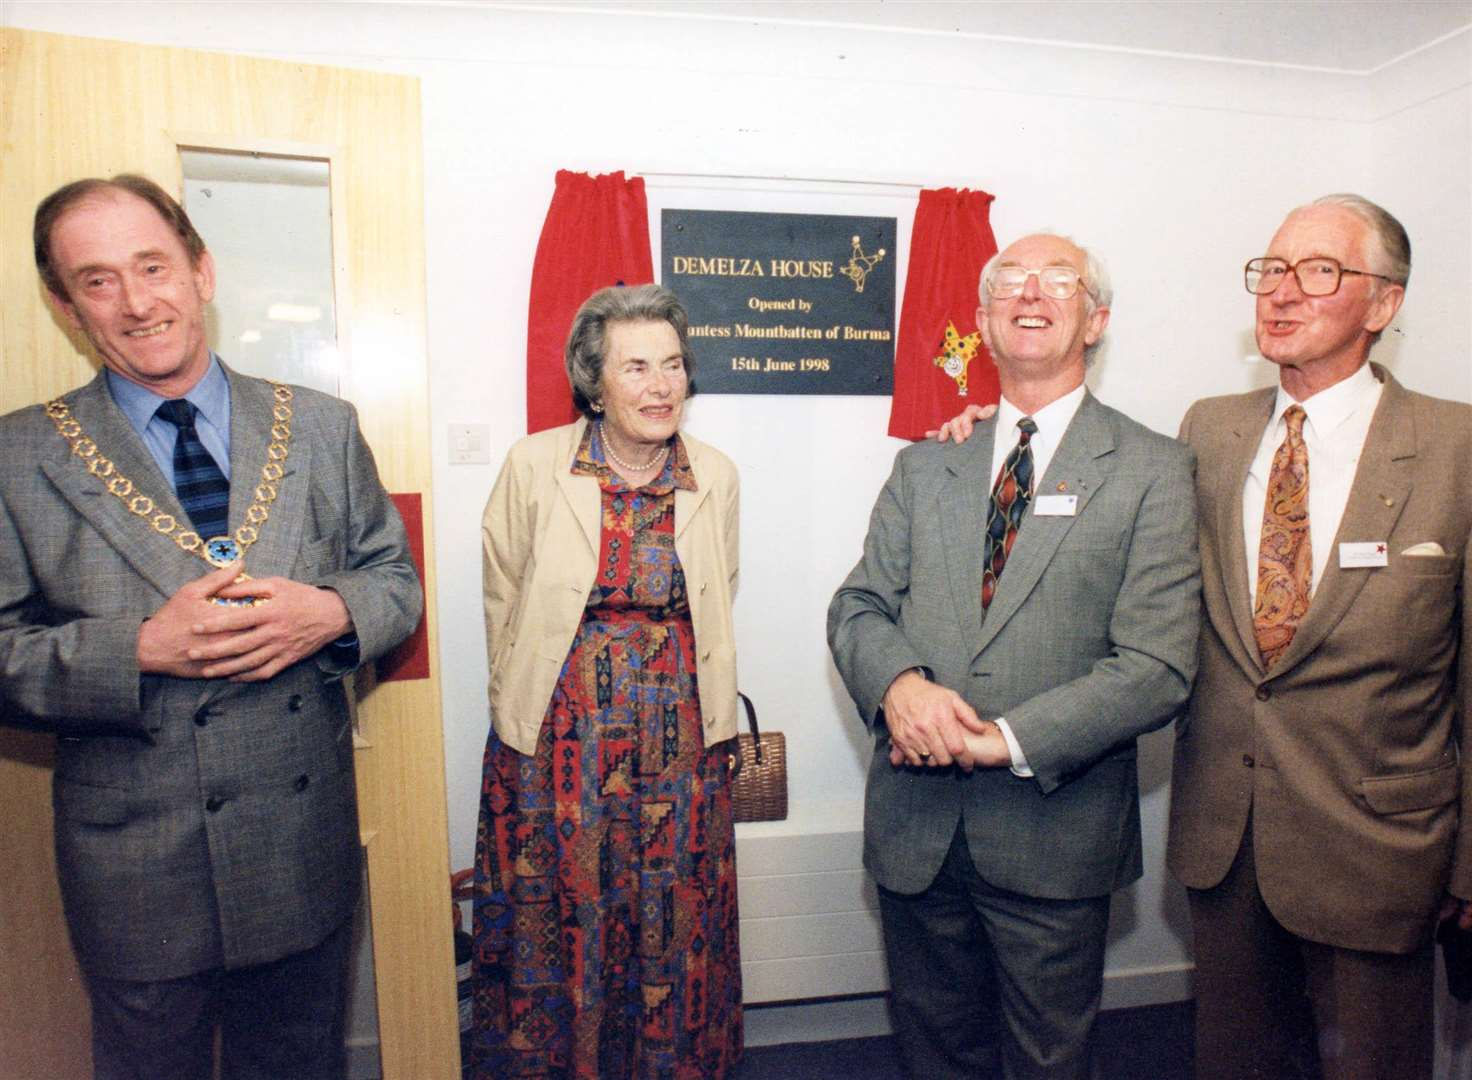 From left, former mayor of Swale, Cllr Gerry Lewin, the late Countess Mountbatten of Burma, Derek Phillips, and Harold Rogers, the then president of Demelza Hospice Care for Children